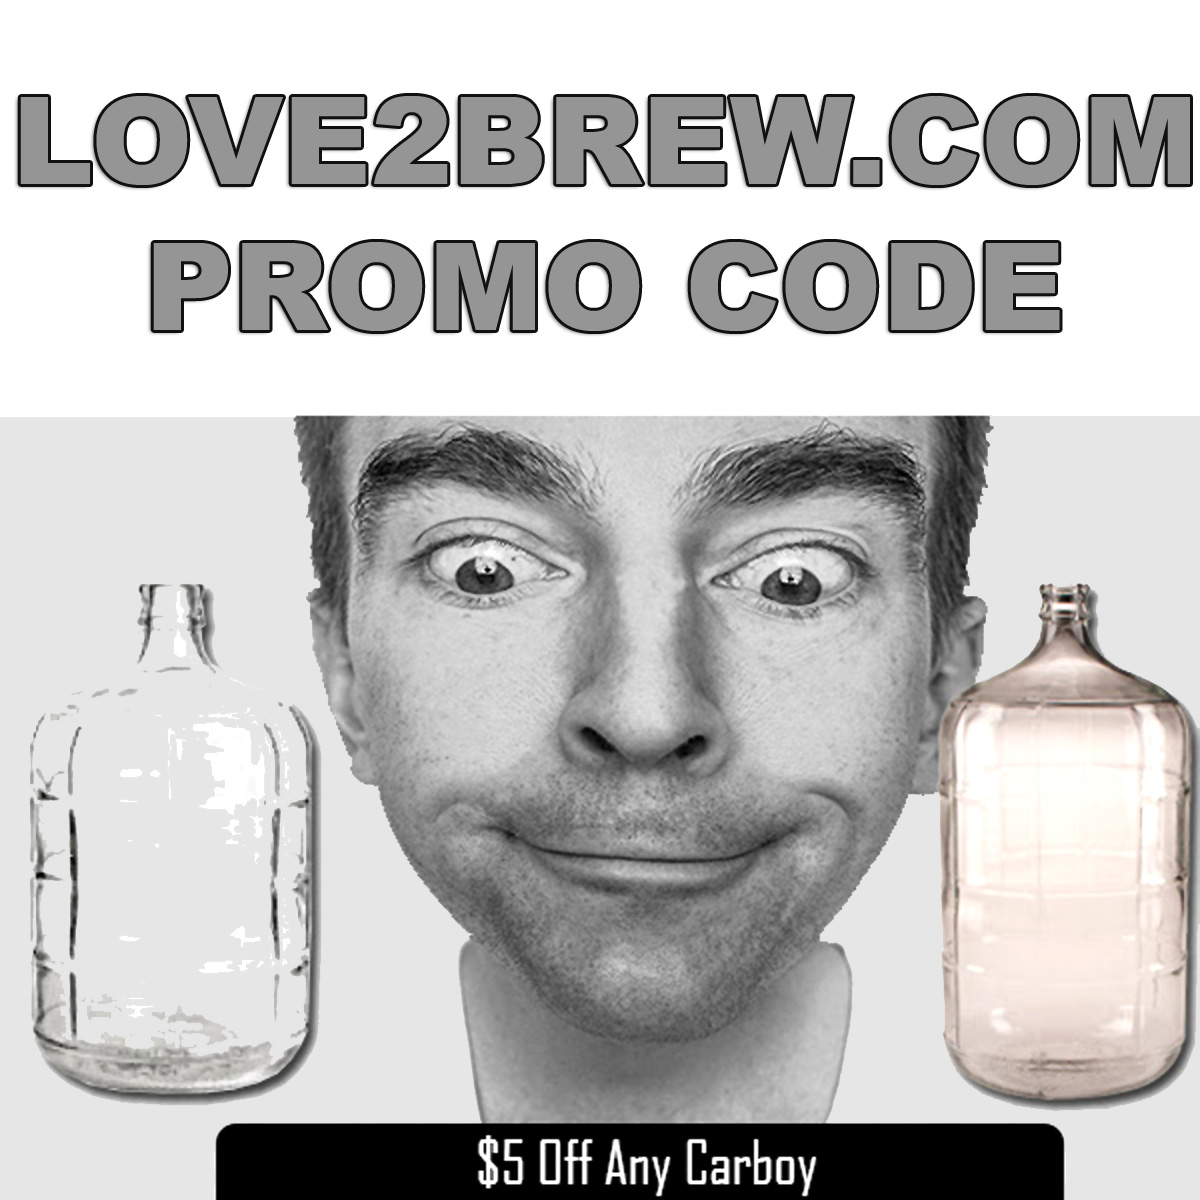 Love2Brew Save $5 On Any Carboy at Love2Brew.com With This Love 2 Brew Promo Code Coupon Code